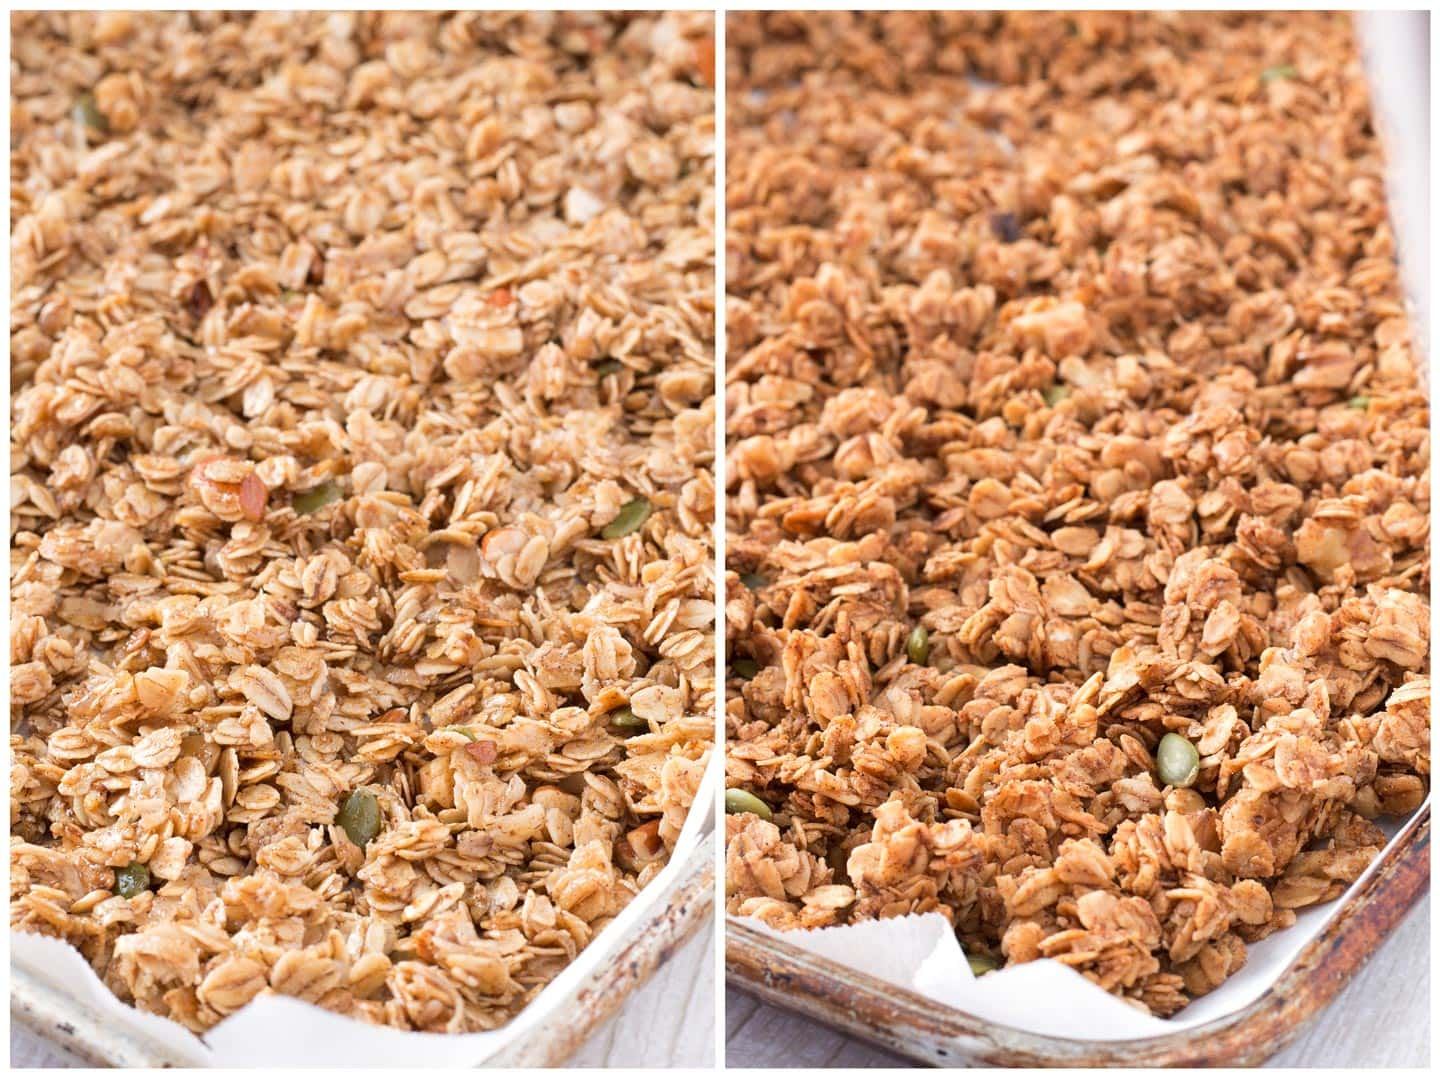 Before and after pictures of crunchy granola.